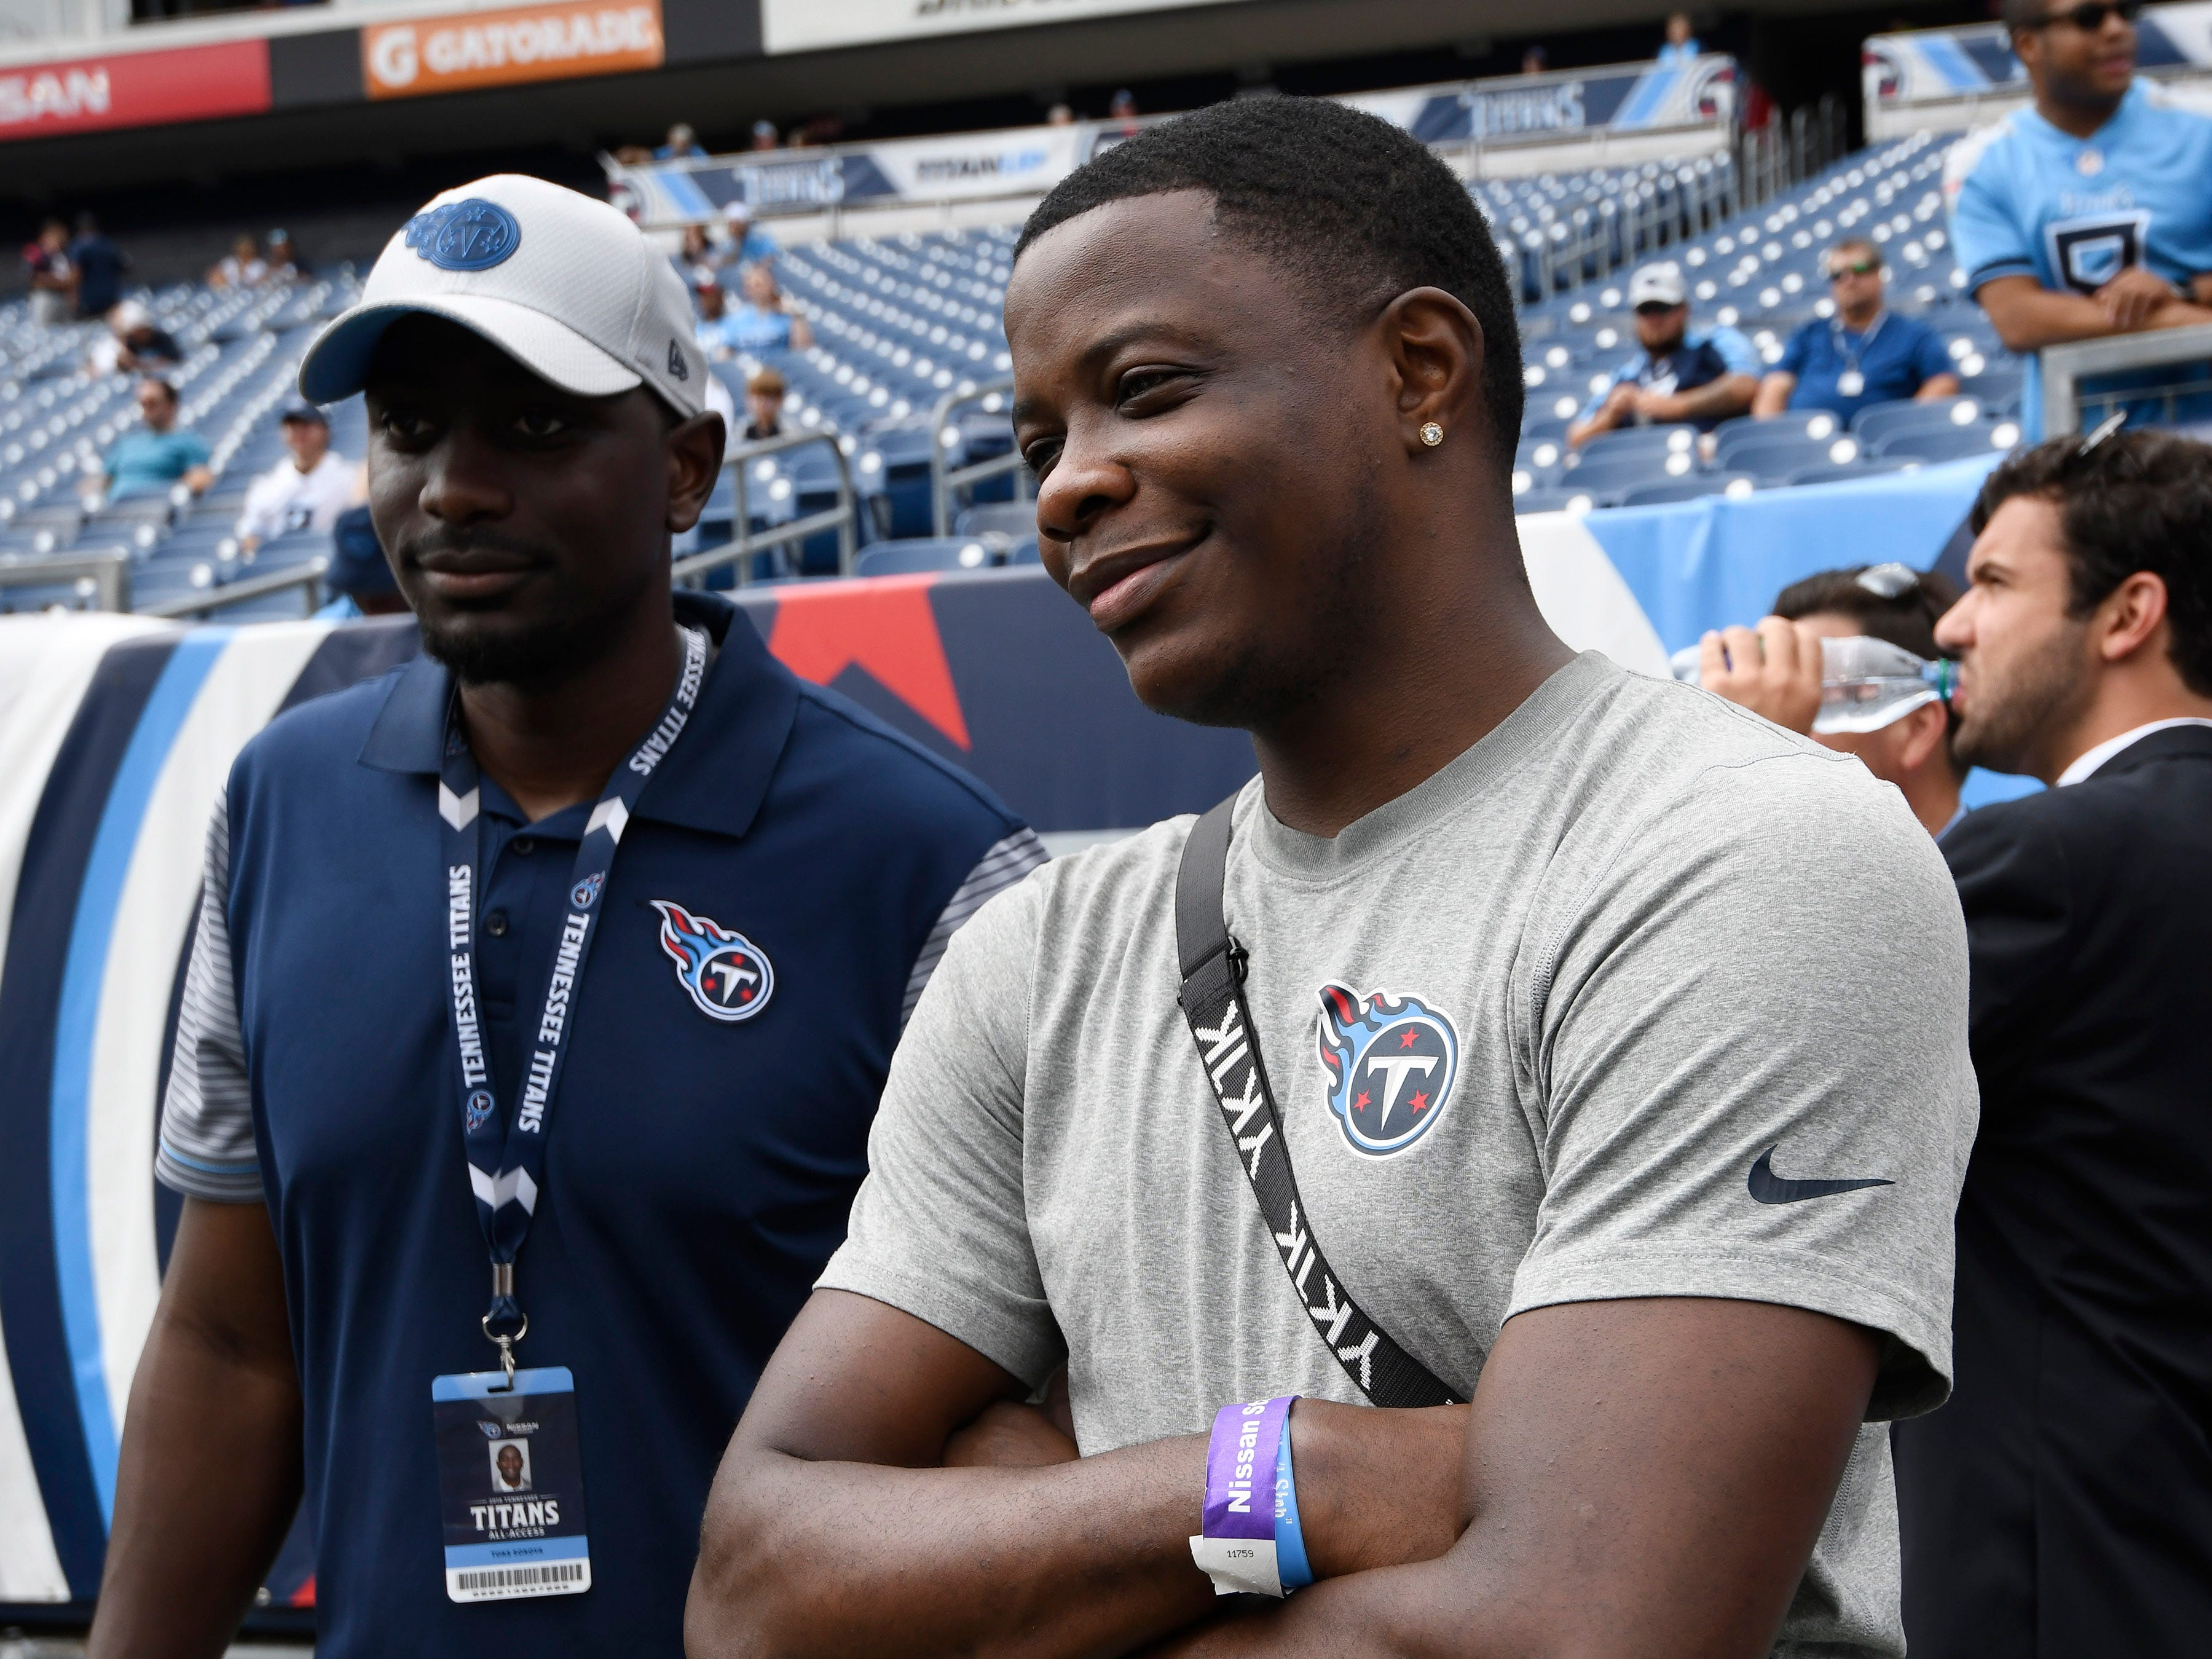 Waffle House shooting hero James Shaw Jr. watches the Titans warm up before the game against the Texans at Nissan Stadium Sunday, Sept. 16, 2018, in Nashville, Tenn.